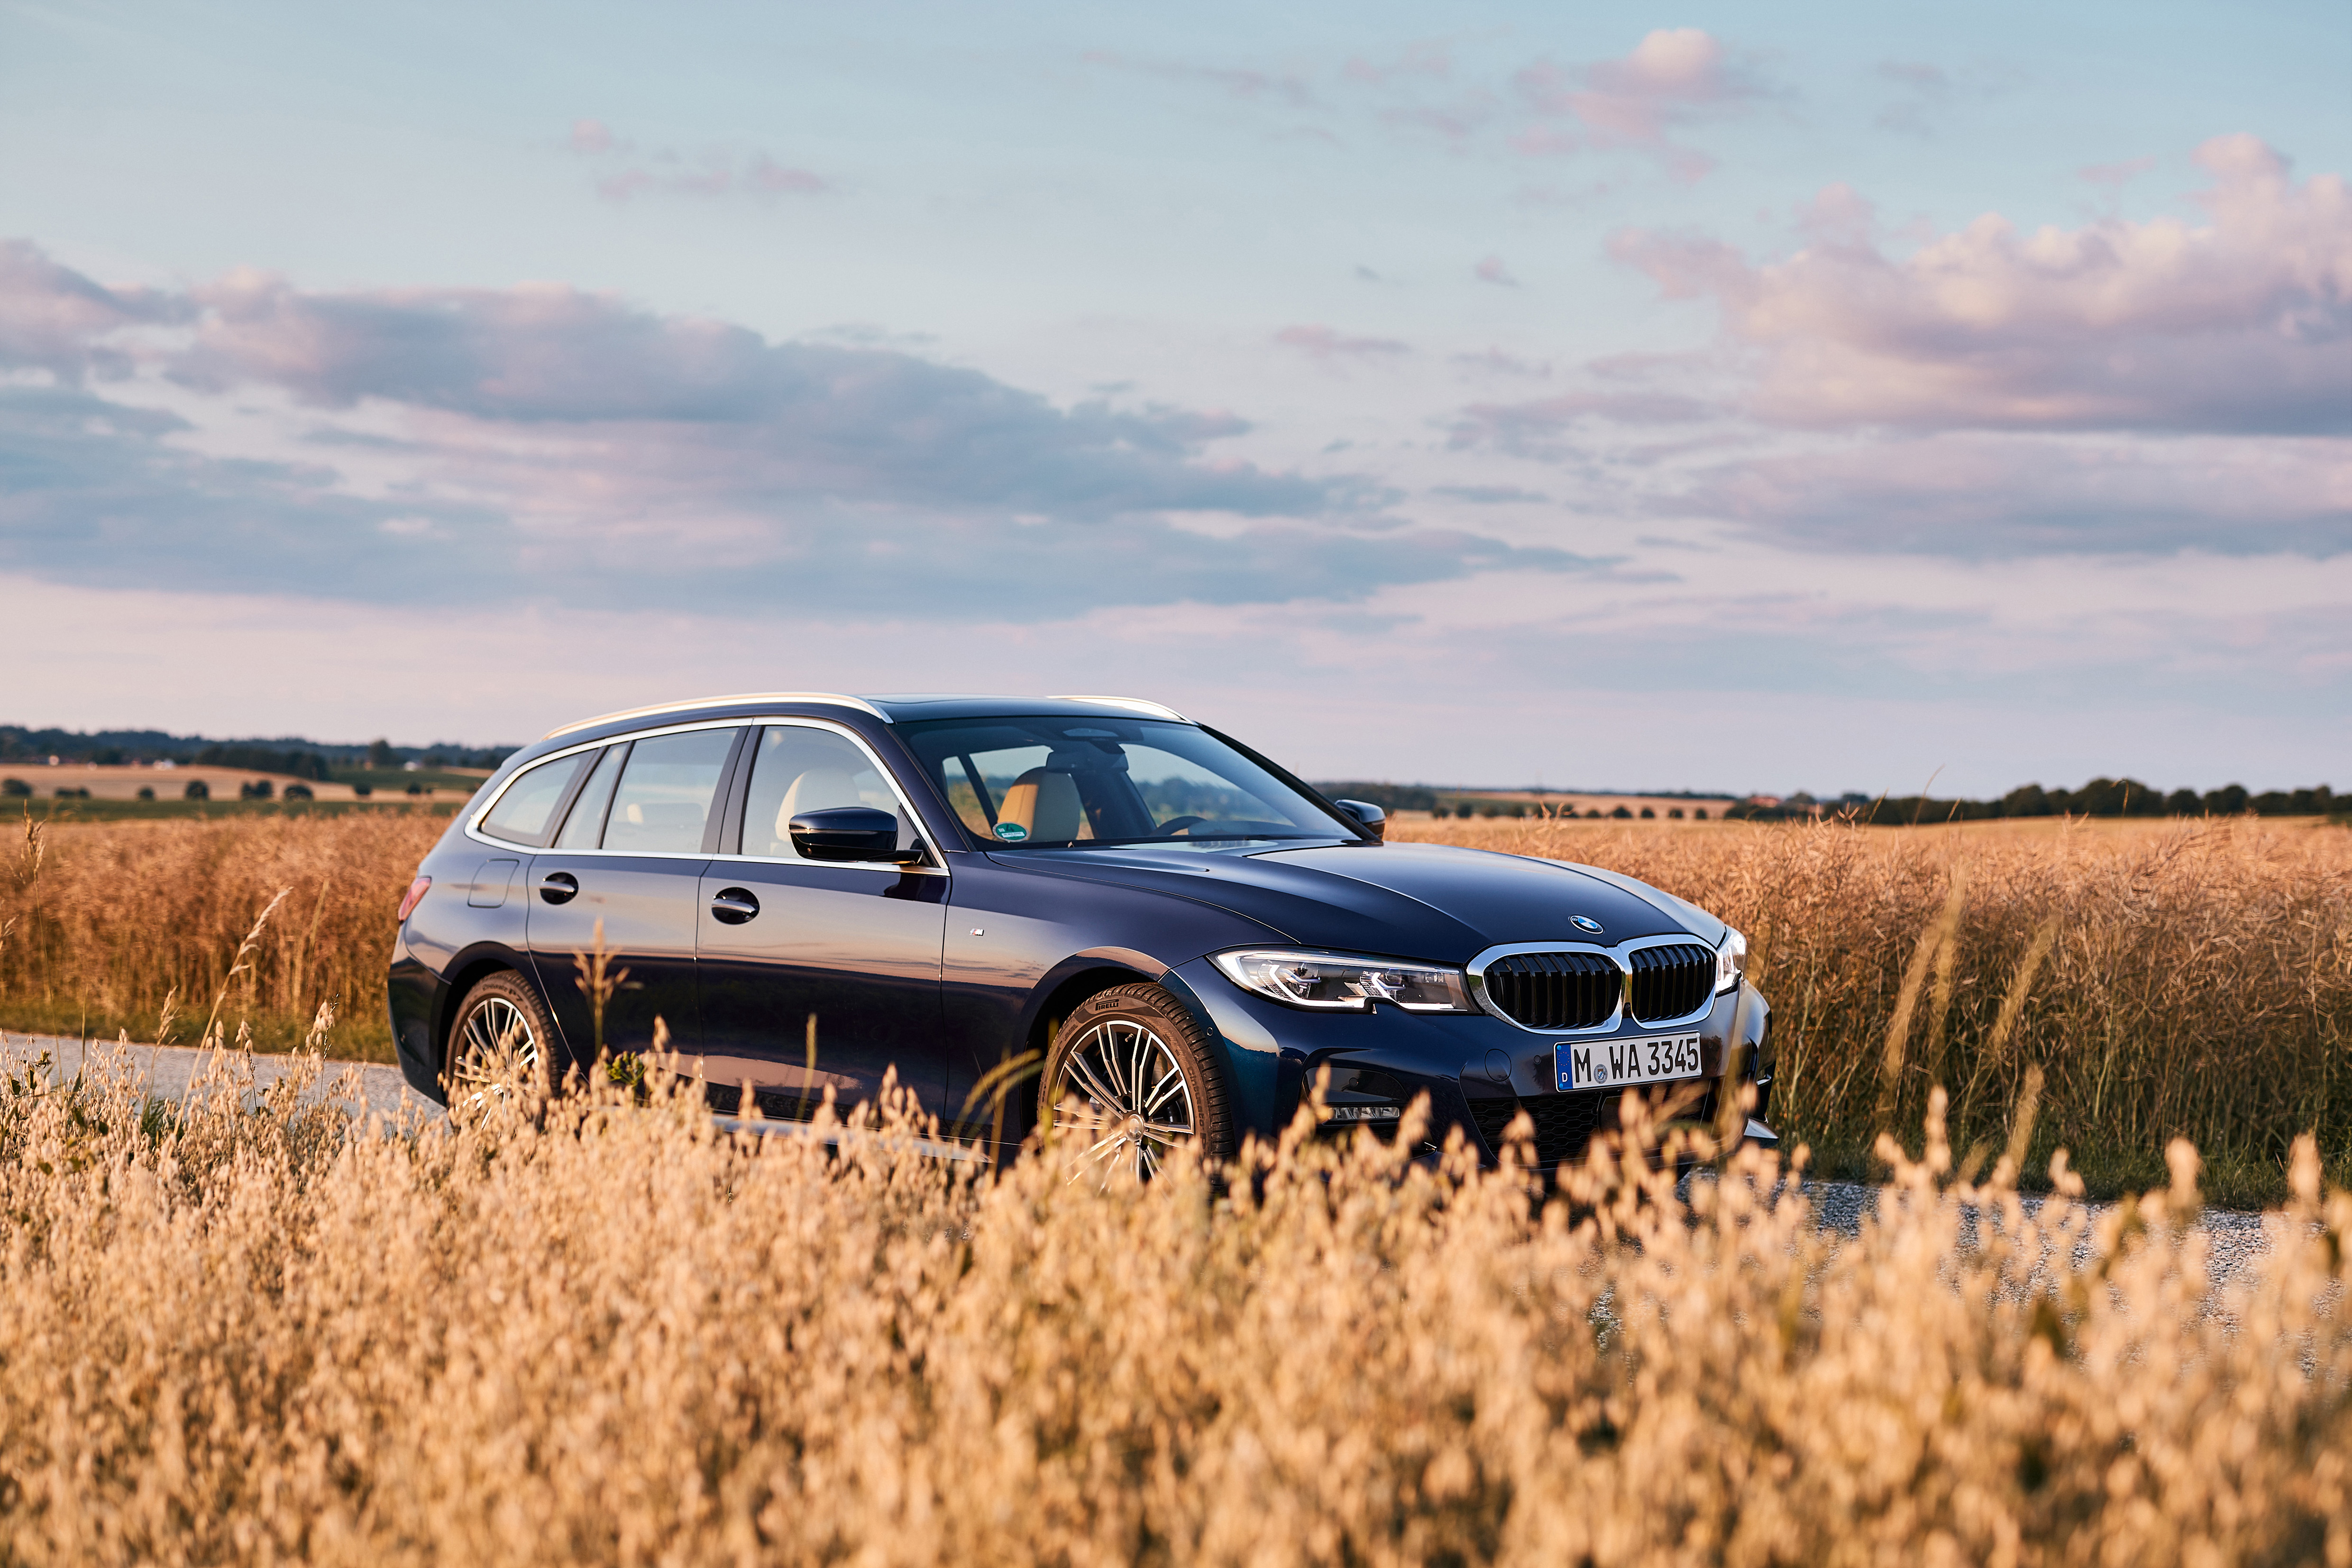 The Touring has always been the go-to option for those wanting a practical but sporty estate car